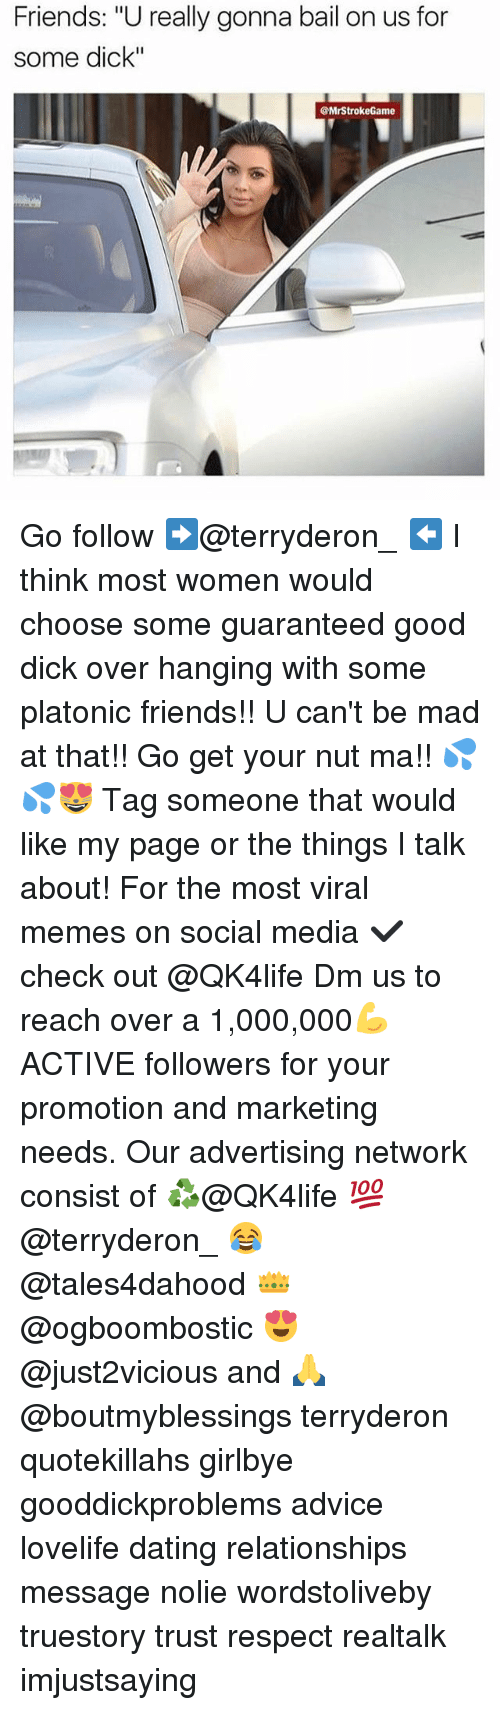 """Good Dicks: Friends: """"U really gonna bail on us for  some dick""""  @MrStrokeGame Go follow ➡@terryderon_ ⬅️ I think most women would choose some guaranteed good dick over hanging with some platonic friends!! U can't be mad at that!! Go get your nut ma!! 💦💦😻 Tag someone that would like my page or the things I talk about! For the most viral memes on social media ✔check out @QK4life Dm us to reach over a 1,000,000💪ACTIVE followers for your promotion and marketing needs. Our advertising network consist of ♻@QK4life 💯@terryderon_ 😂@tales4dahood 👑@ogboombostic 😍@just2vicious and 🙏@boutmyblessings terryderon quotekillahs girlbye gooddickproblems advice lovelife dating relationships message nolie wordstoliveby truestory trust respect realtalk imjustsaying"""